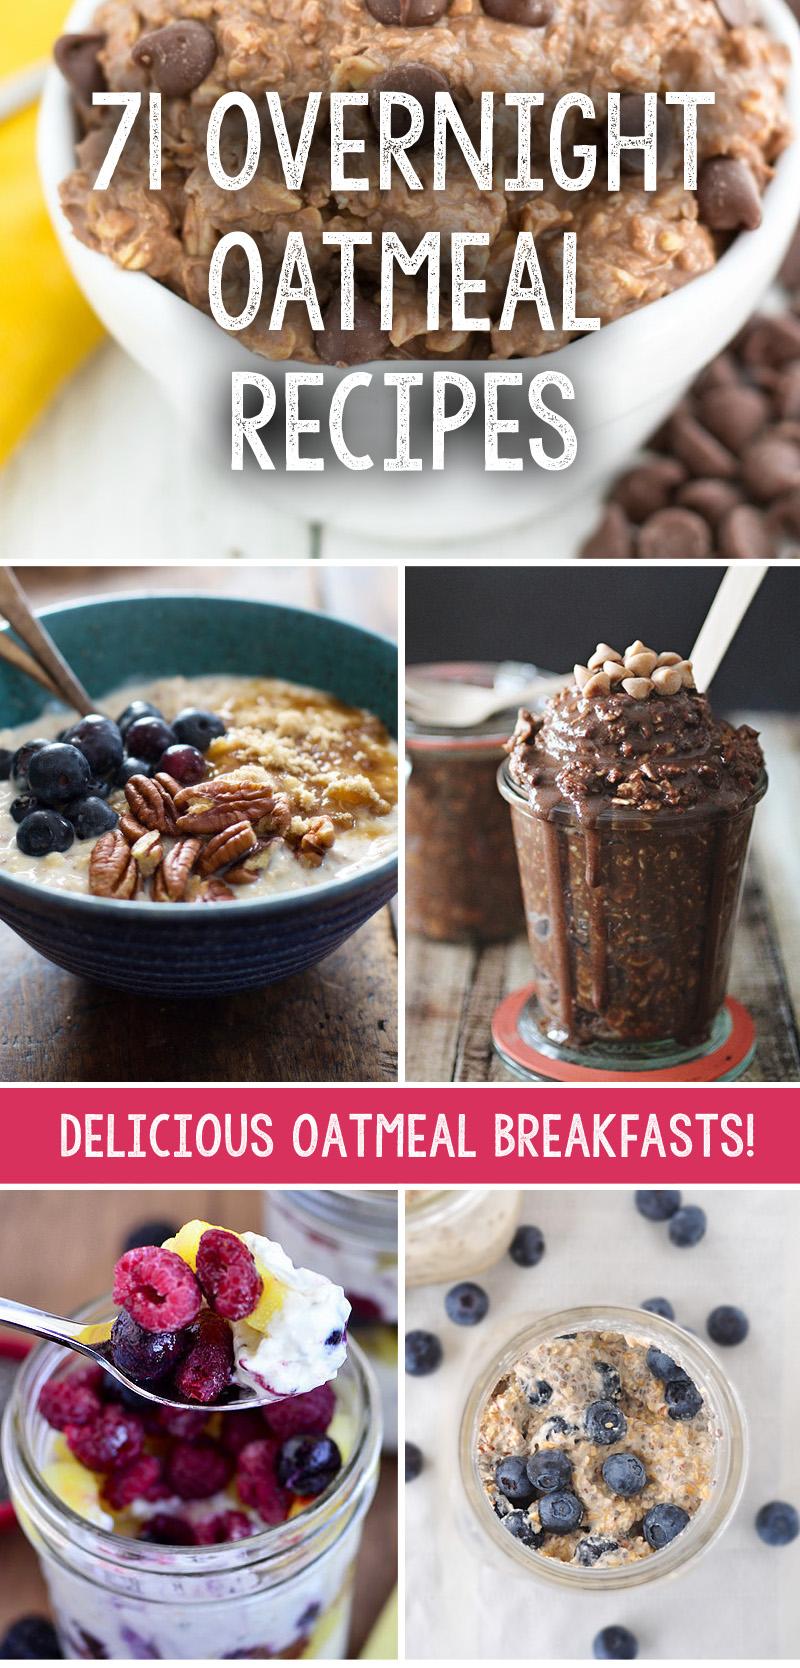 71 Overnight Oatmeal Recipes That Are The Perfect Weight Loss Breakfast